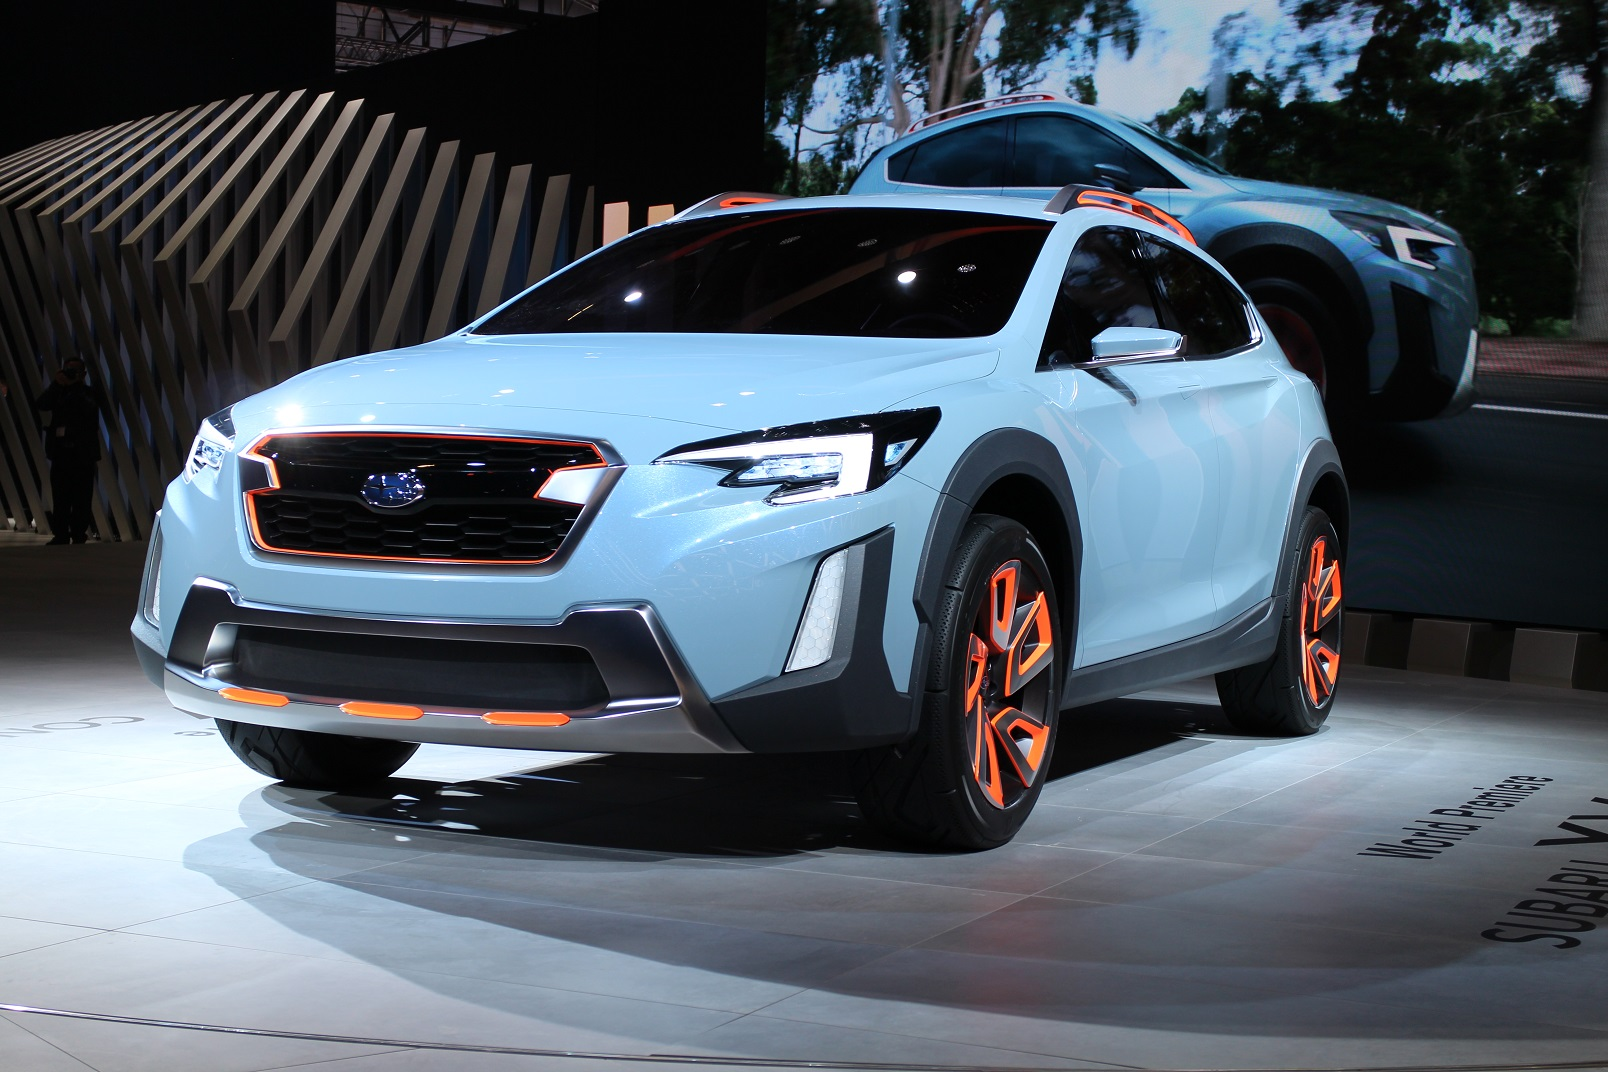 Xv Concept Hints At Next Crosstrek Due For 2018 Model Year